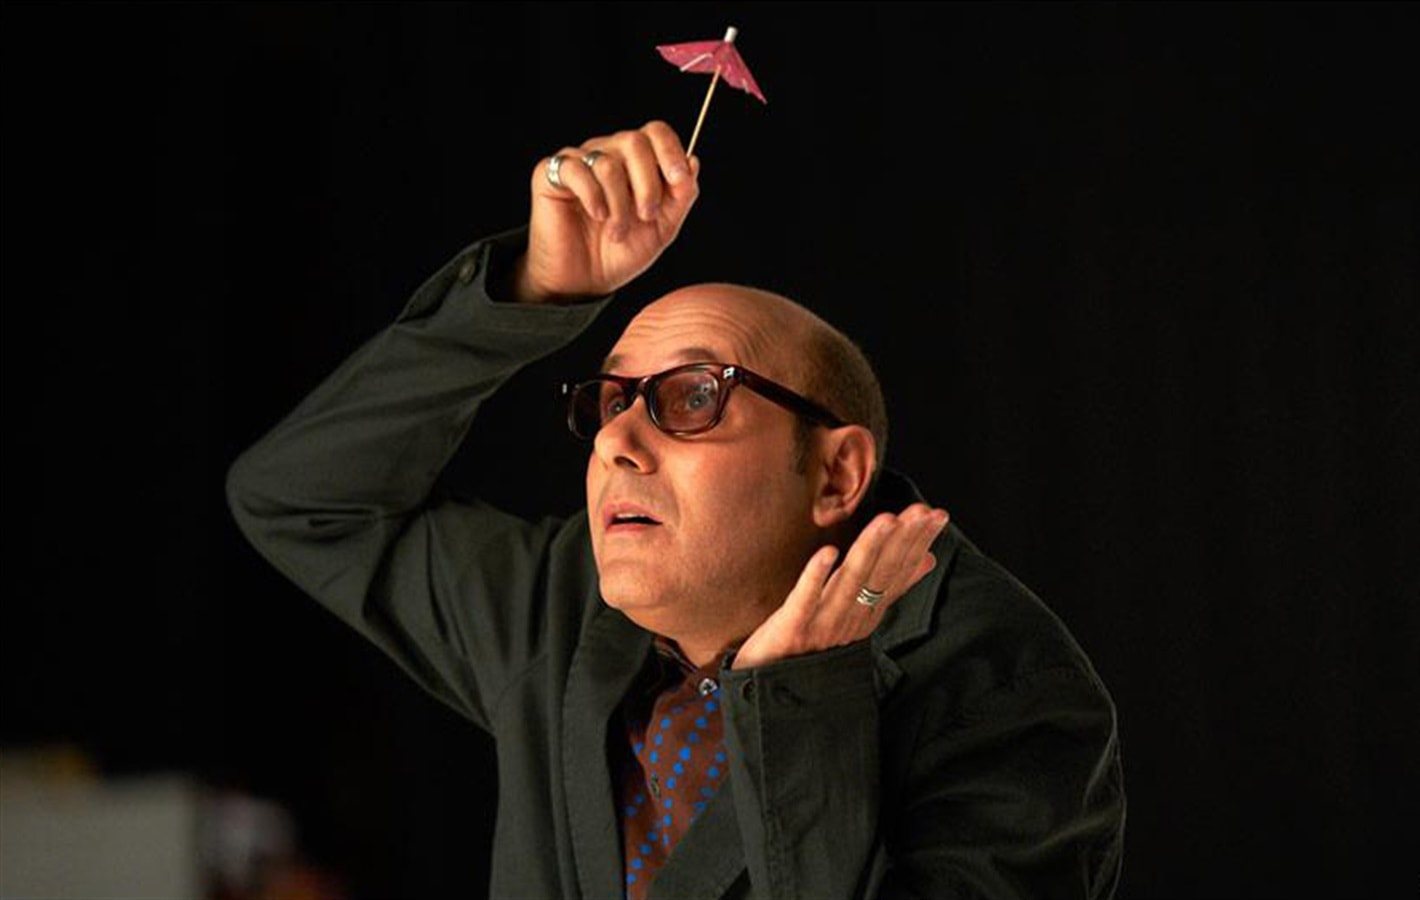 Willie Garson Full hd wallpapers